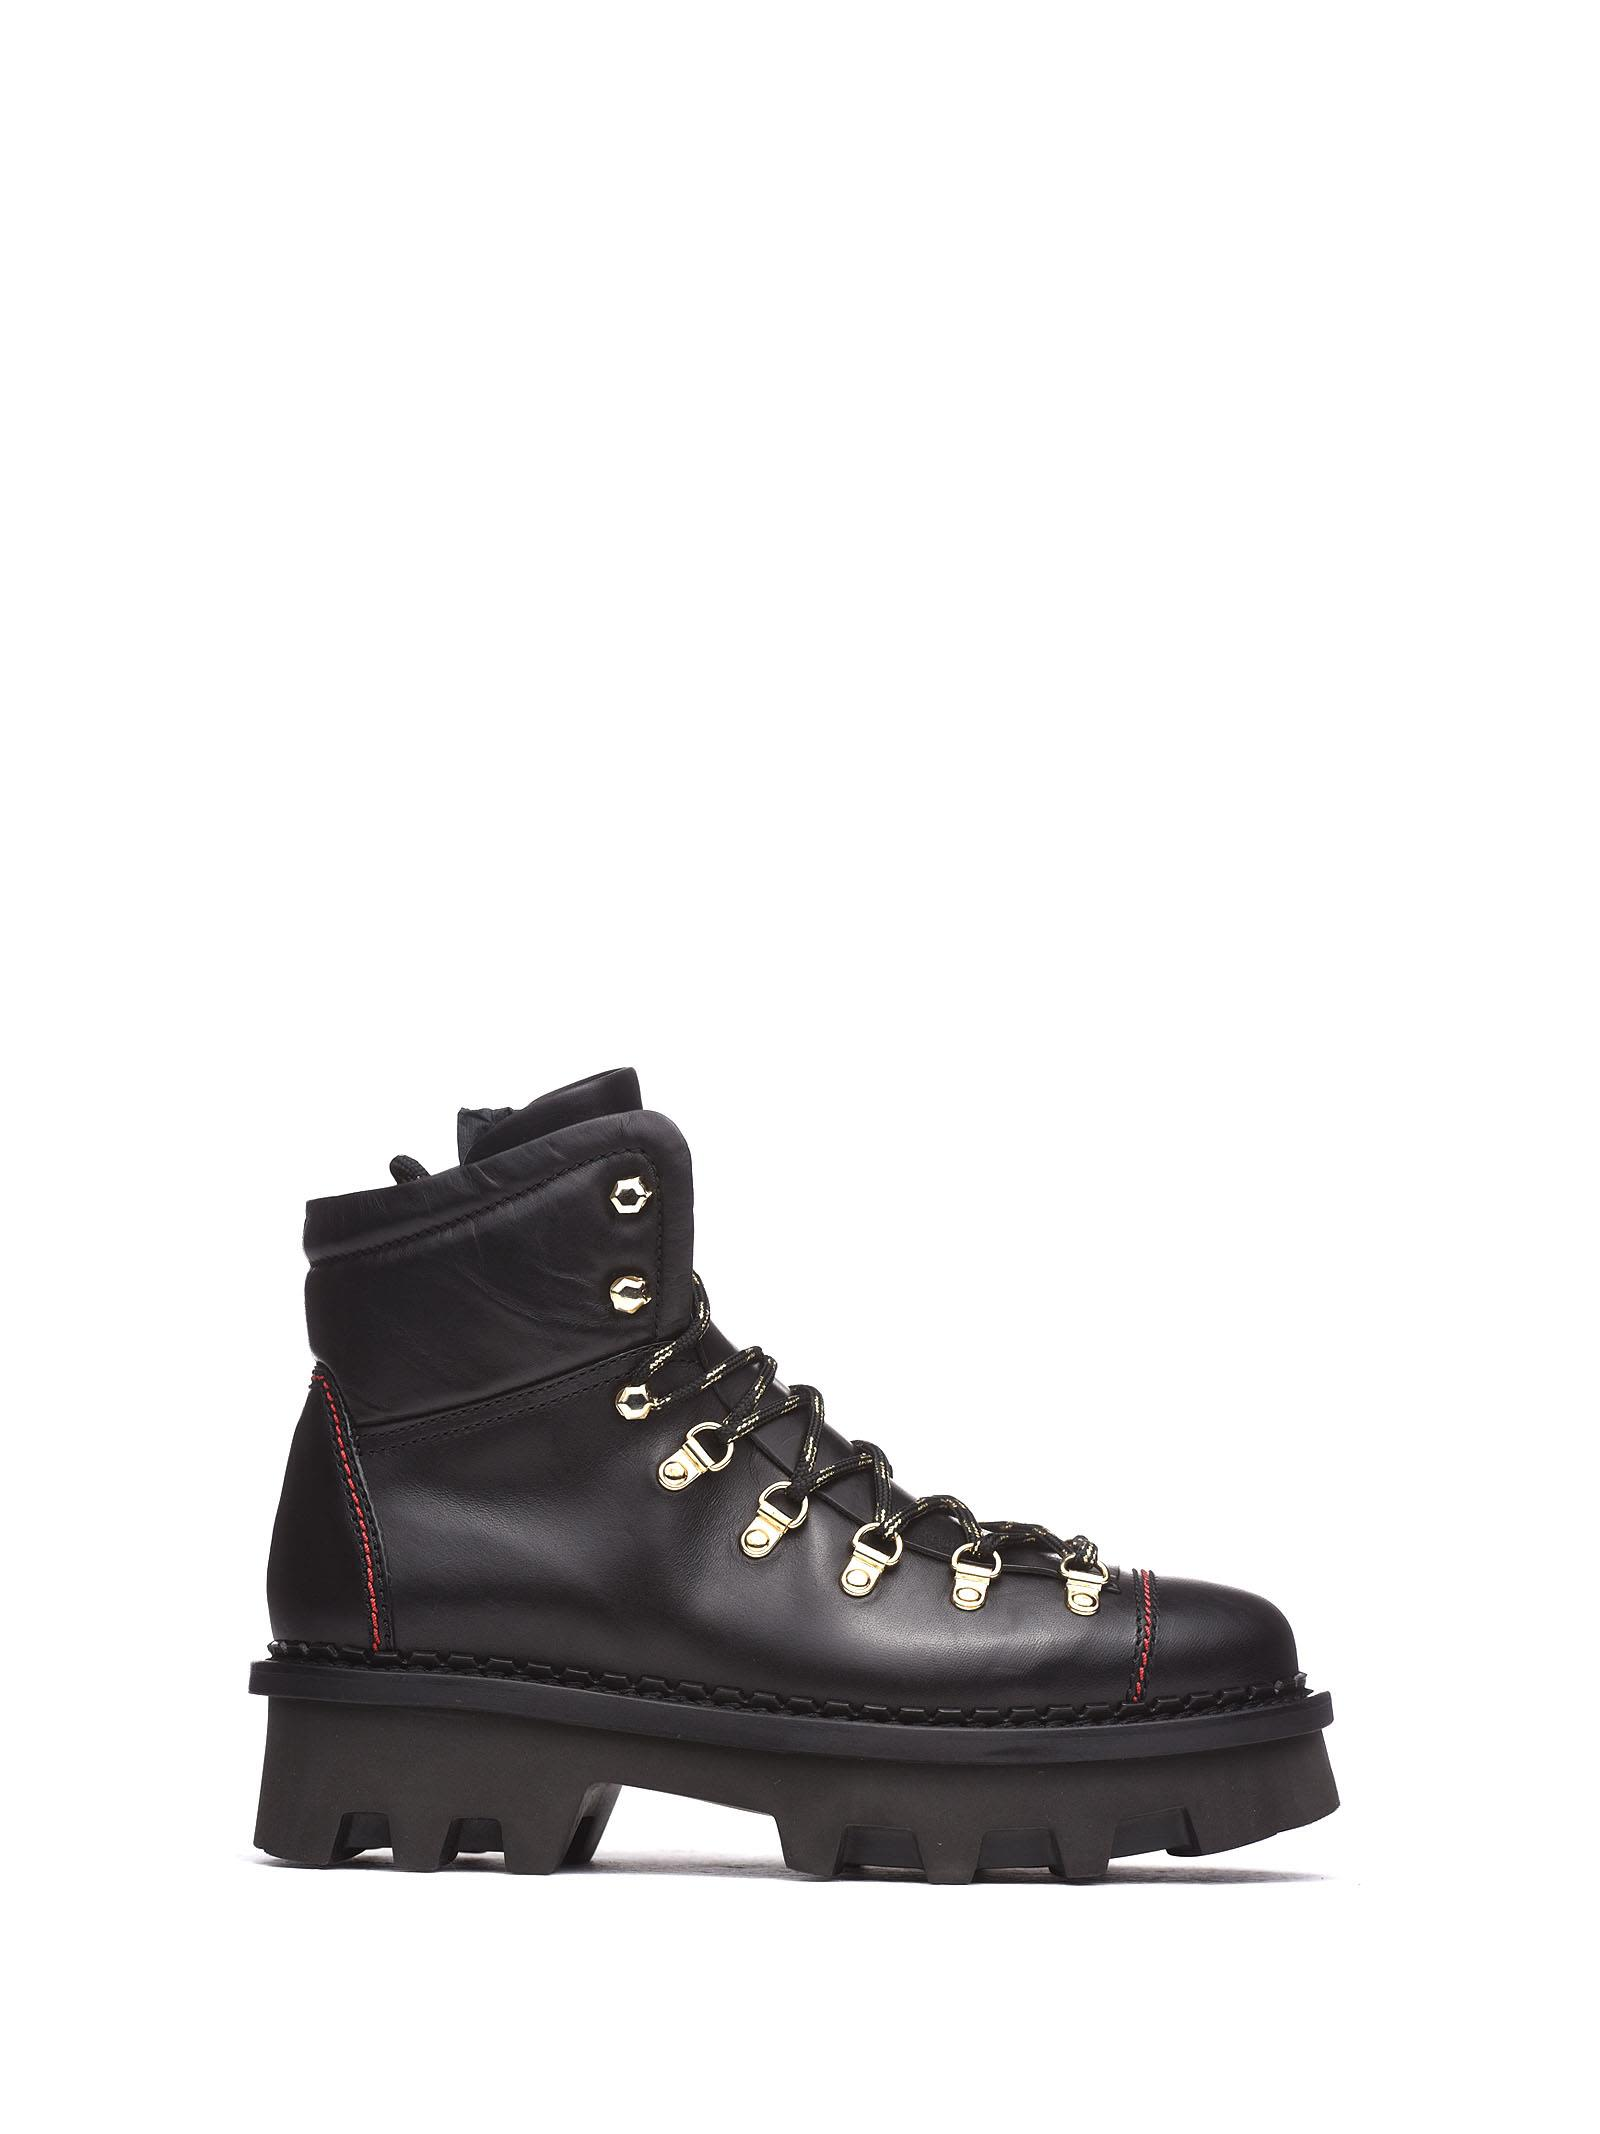 BARRACUDA Ankle Boot With Lug Sole in Nero